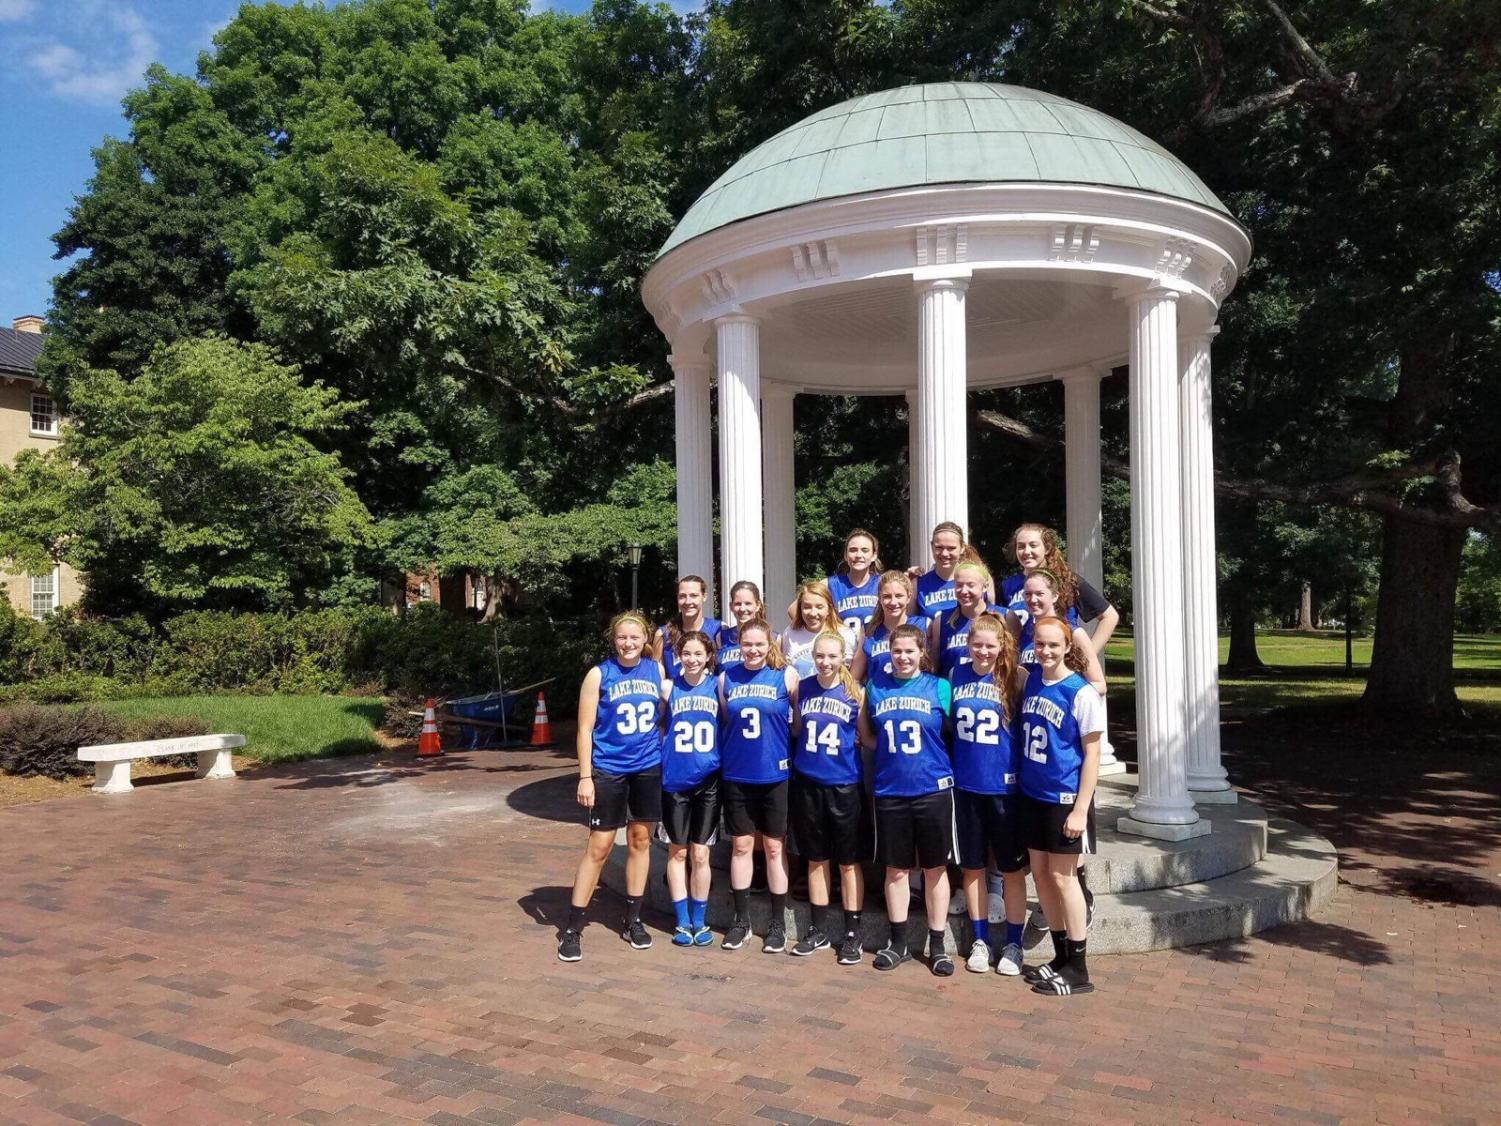 The varsity girls basketball team stands in front of the chapel at the University of North Carolina at Chapel Hill. The team traveled there for their summer camp this past summer in order to practice and increase their skills together.